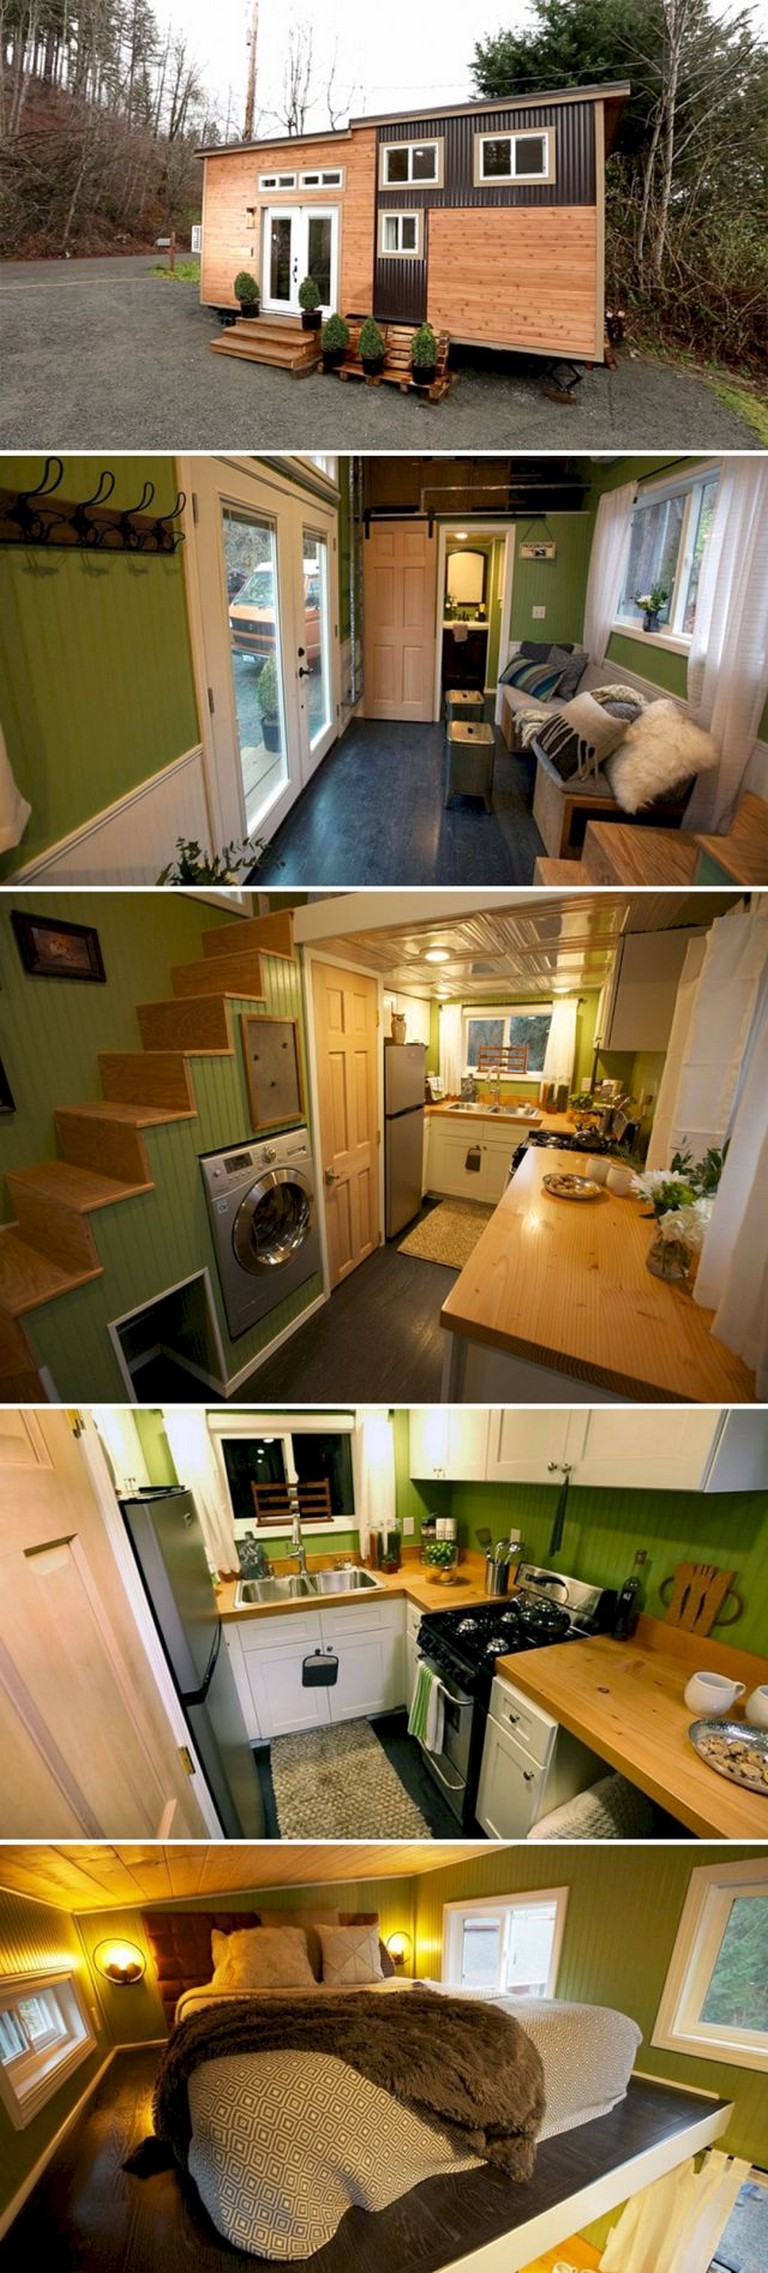 15+ Amazing Tiny Houses Design That Maximize Style and Function #house #housedesign #housedesignideas #tinyhousestorage